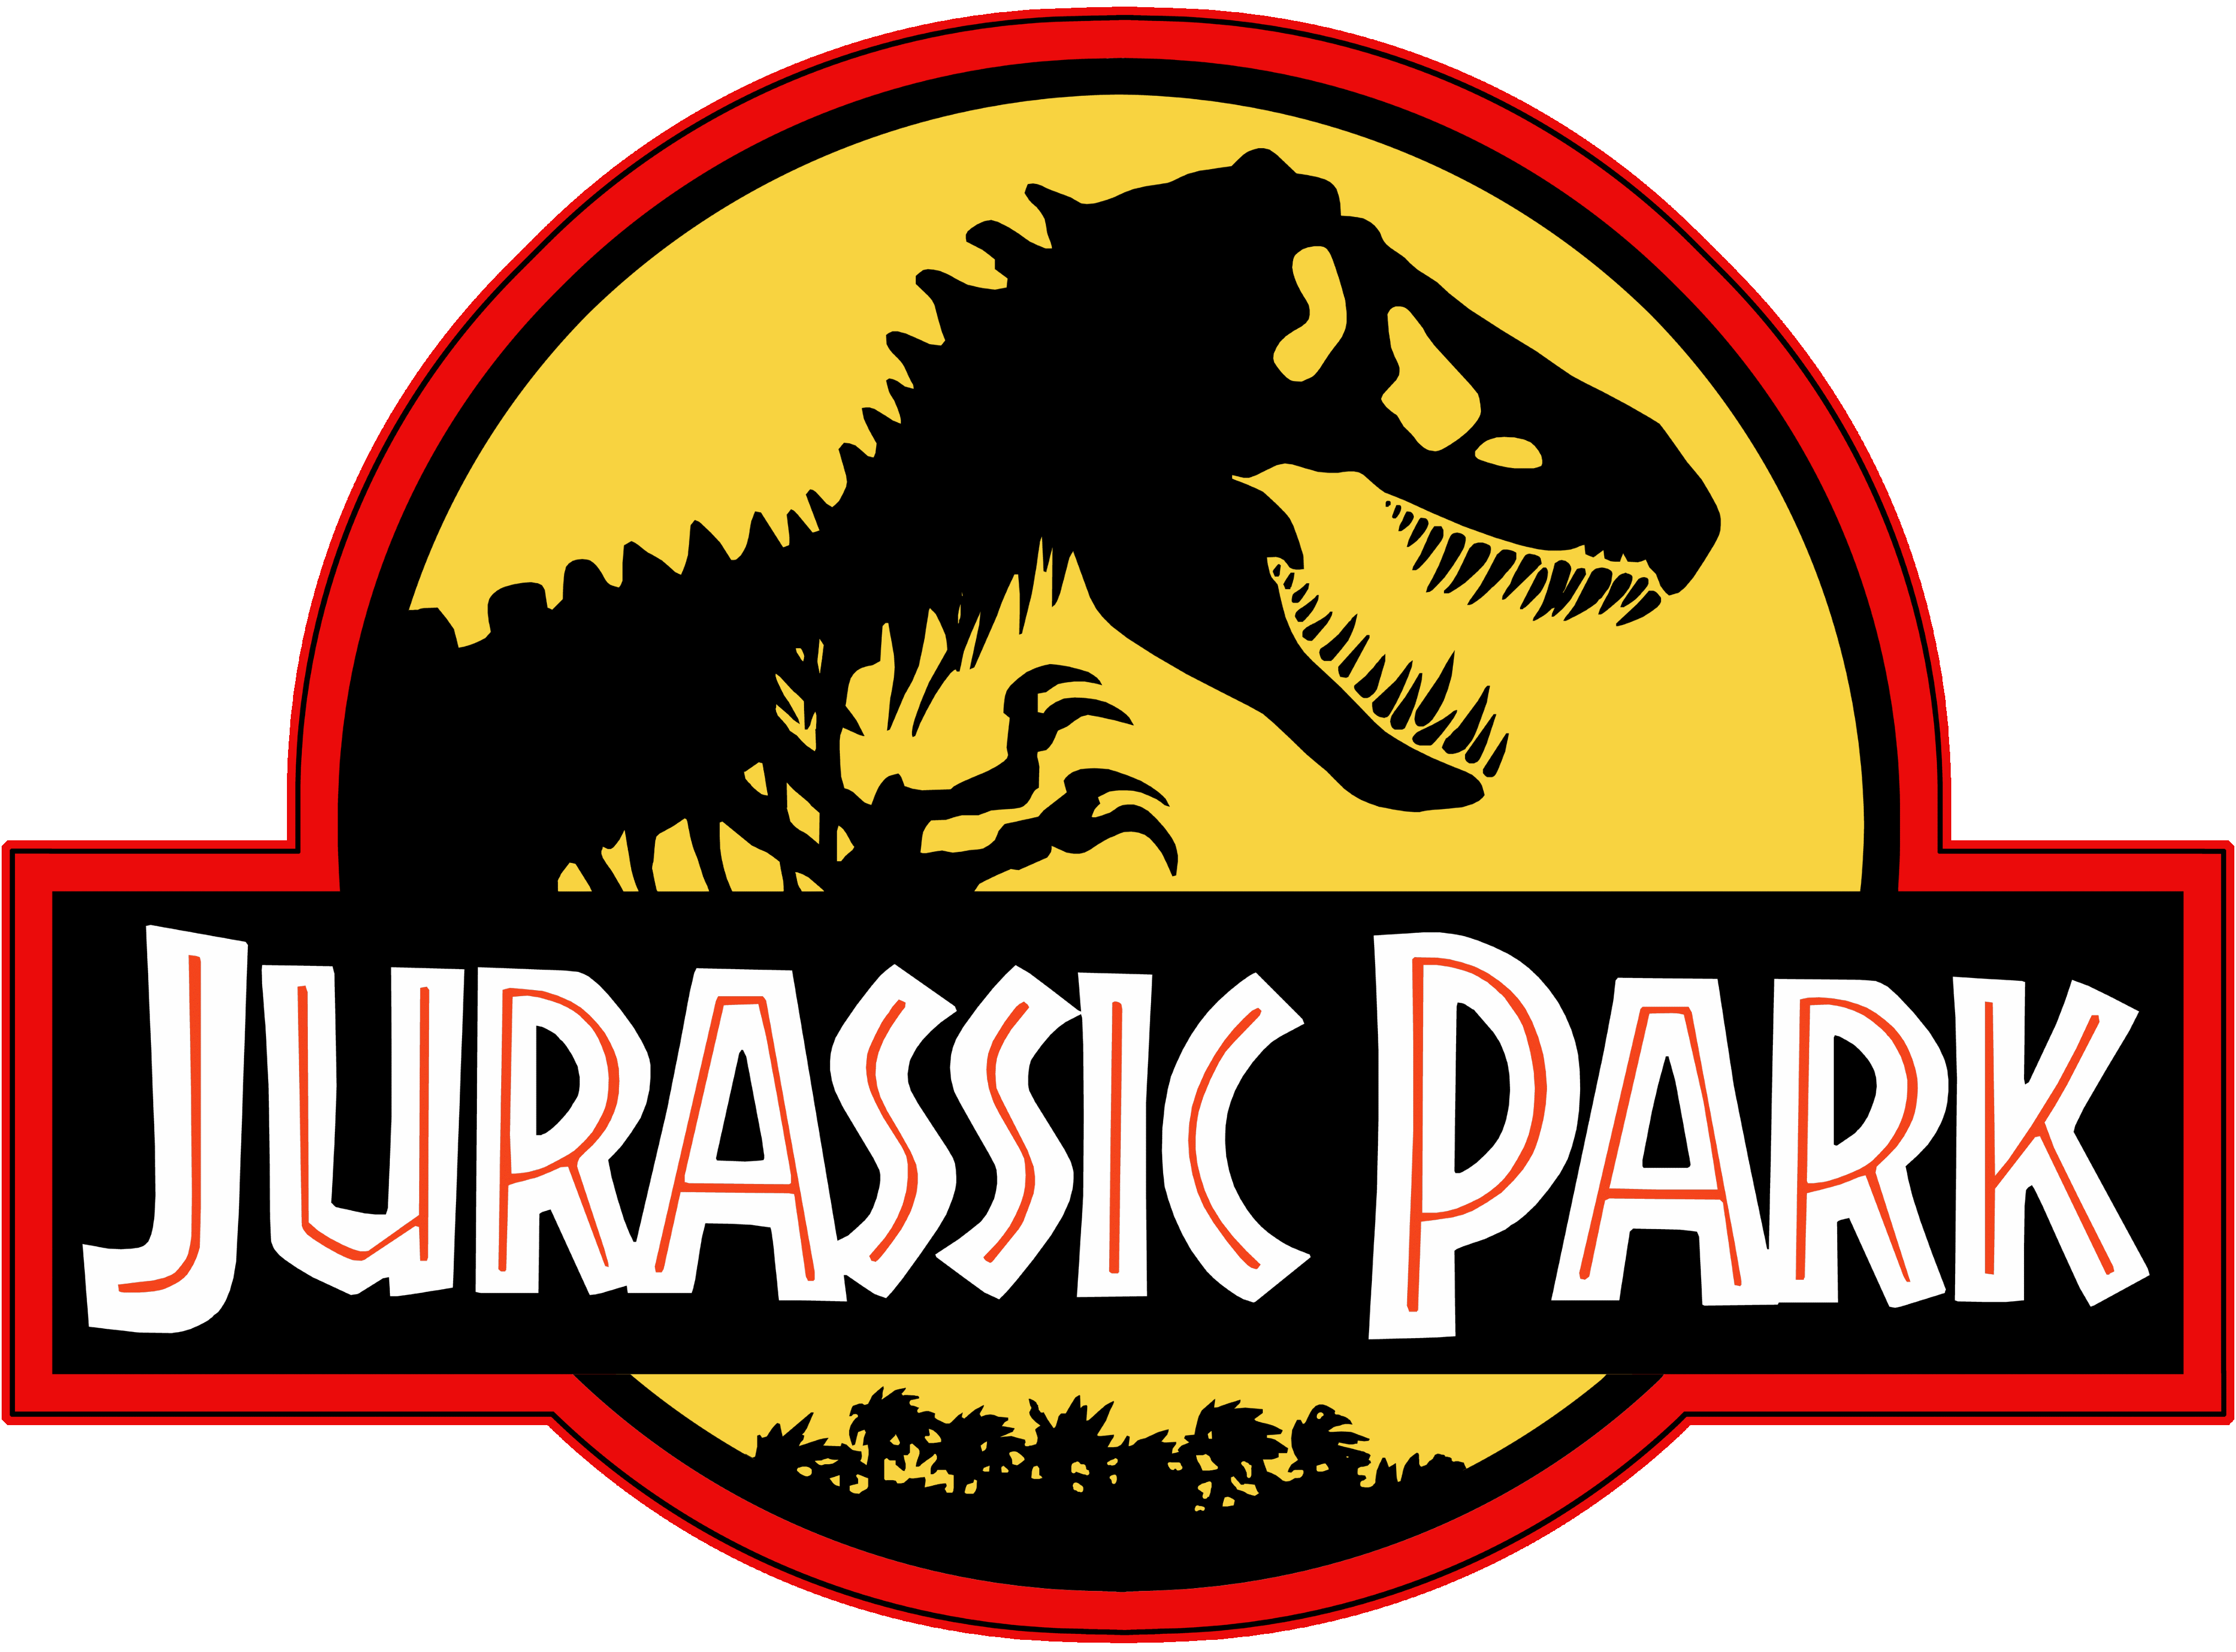 Jurassic Park 4k Ultra HD Wallpaper and Background Image ...